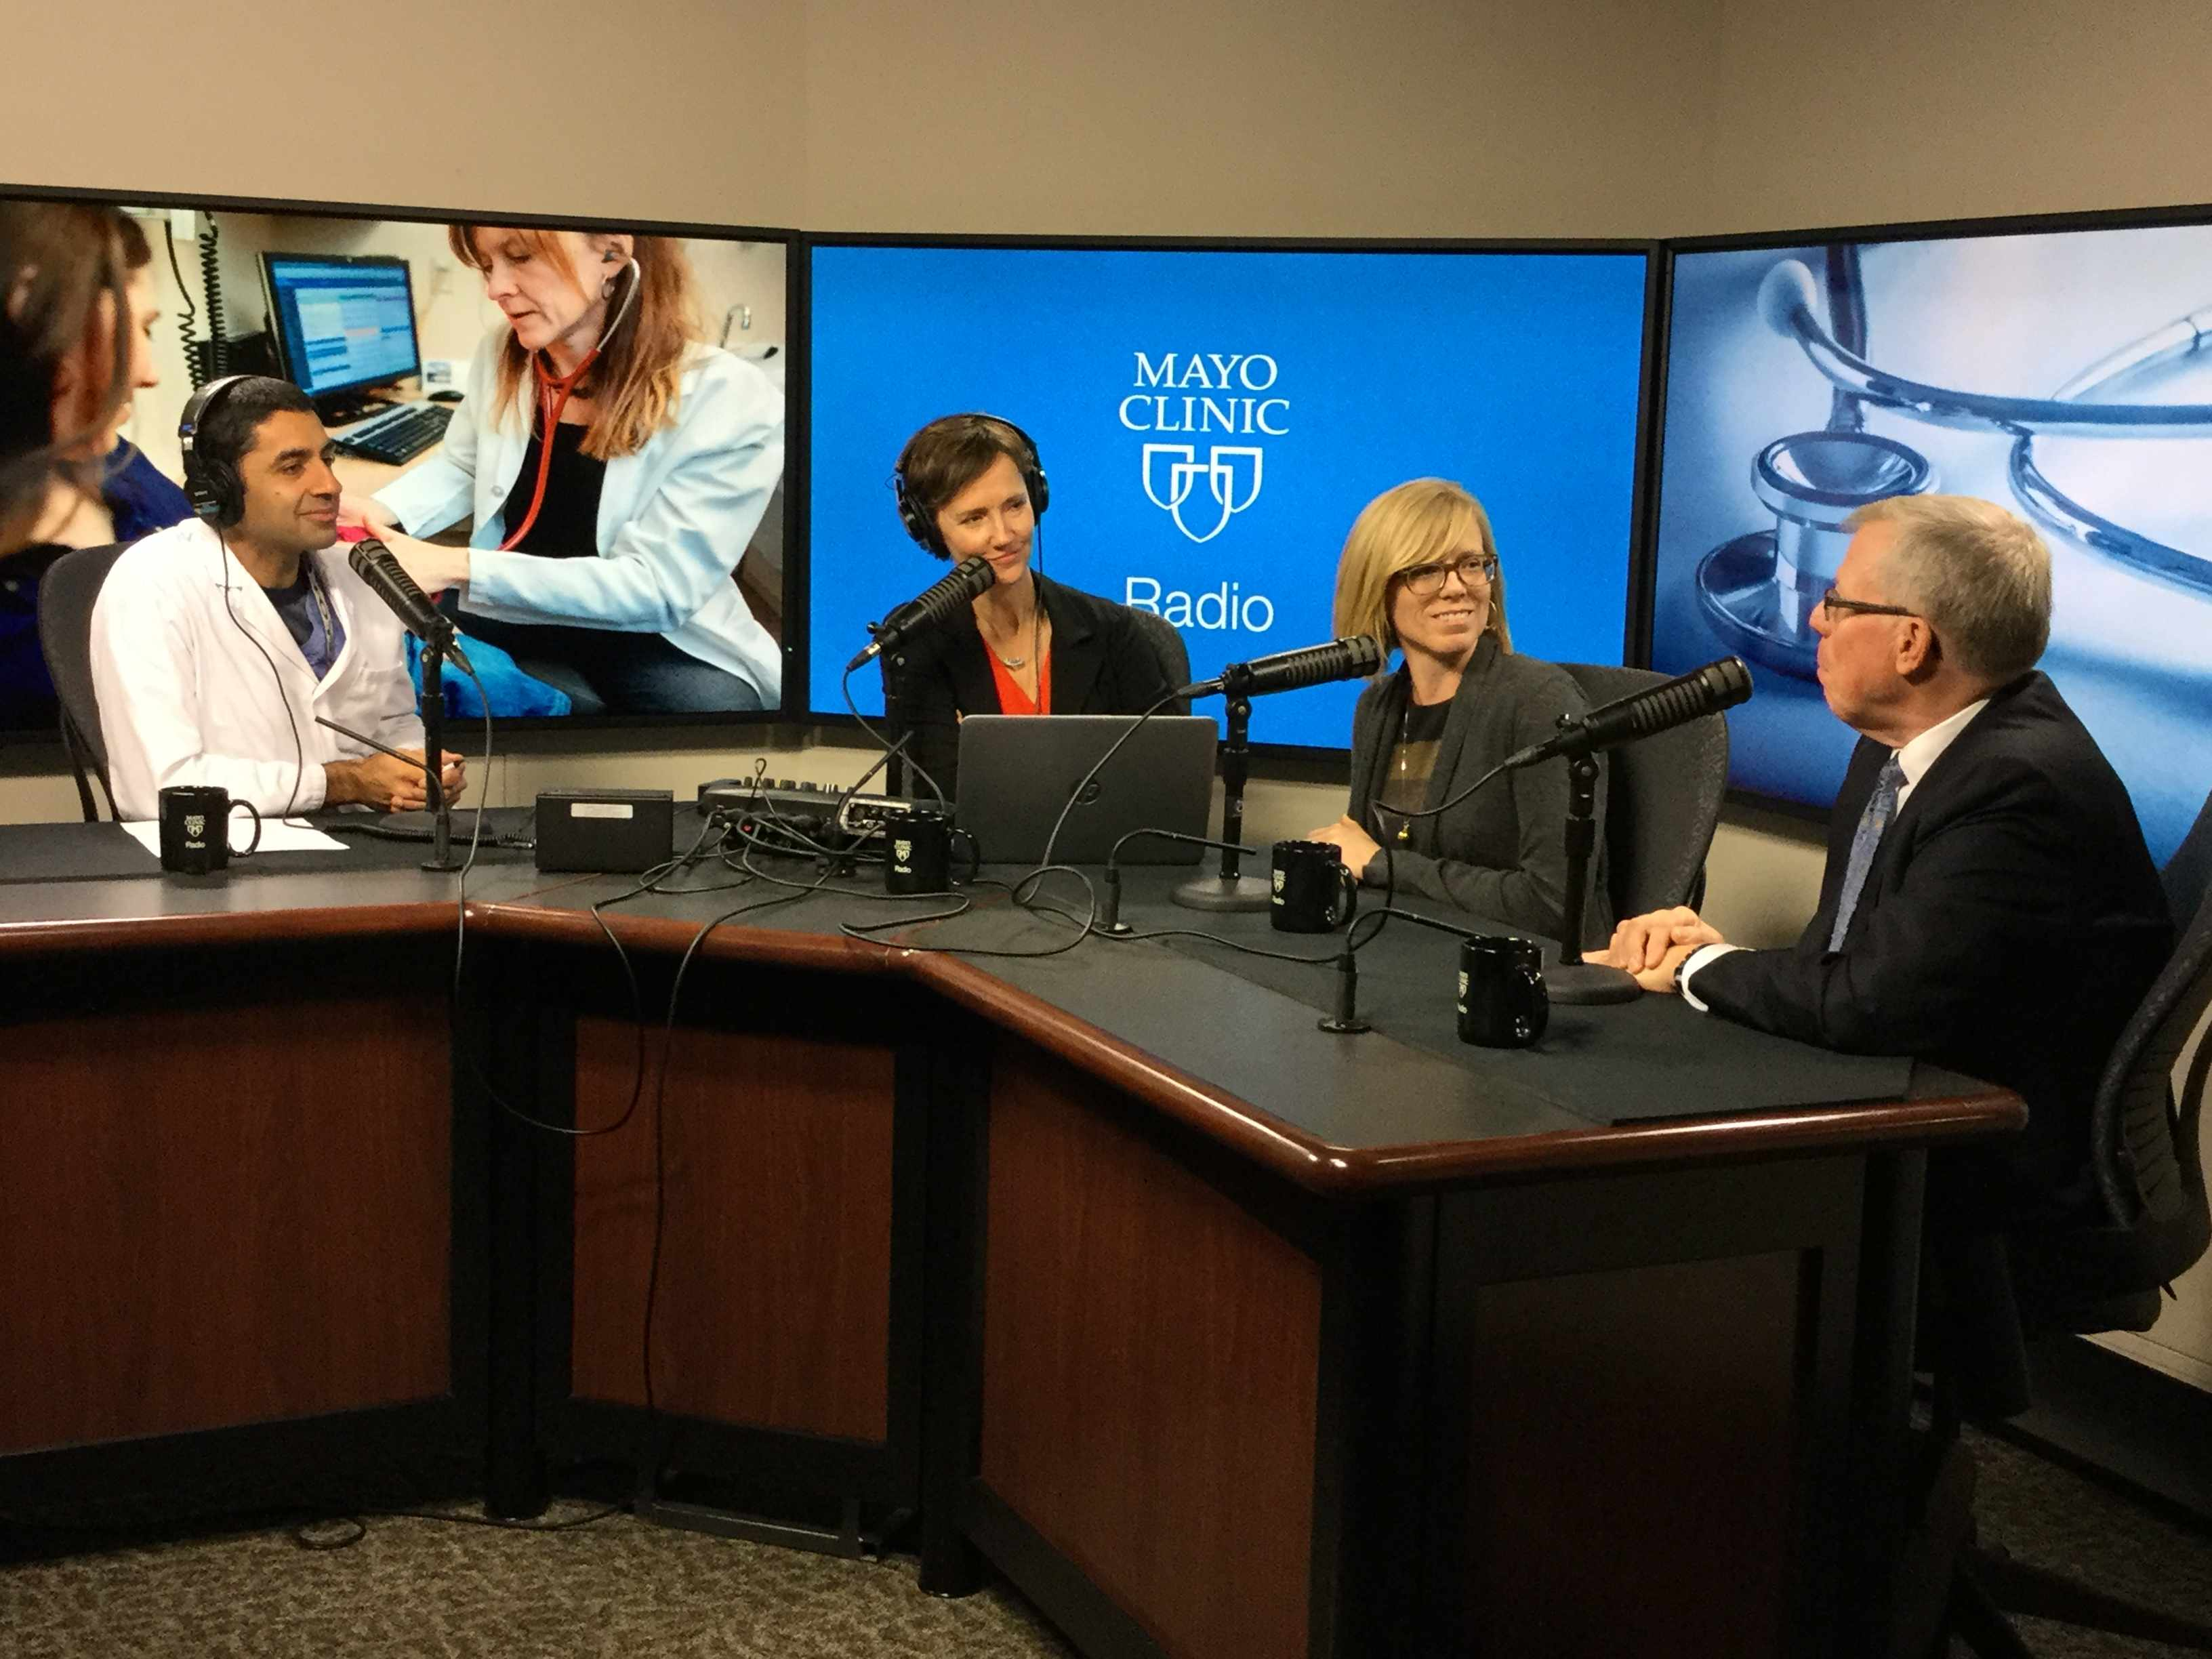 Dr. John Wilkinson and Dr. Elizabeth Cozine being interviewed on Mayo Clinic Radio